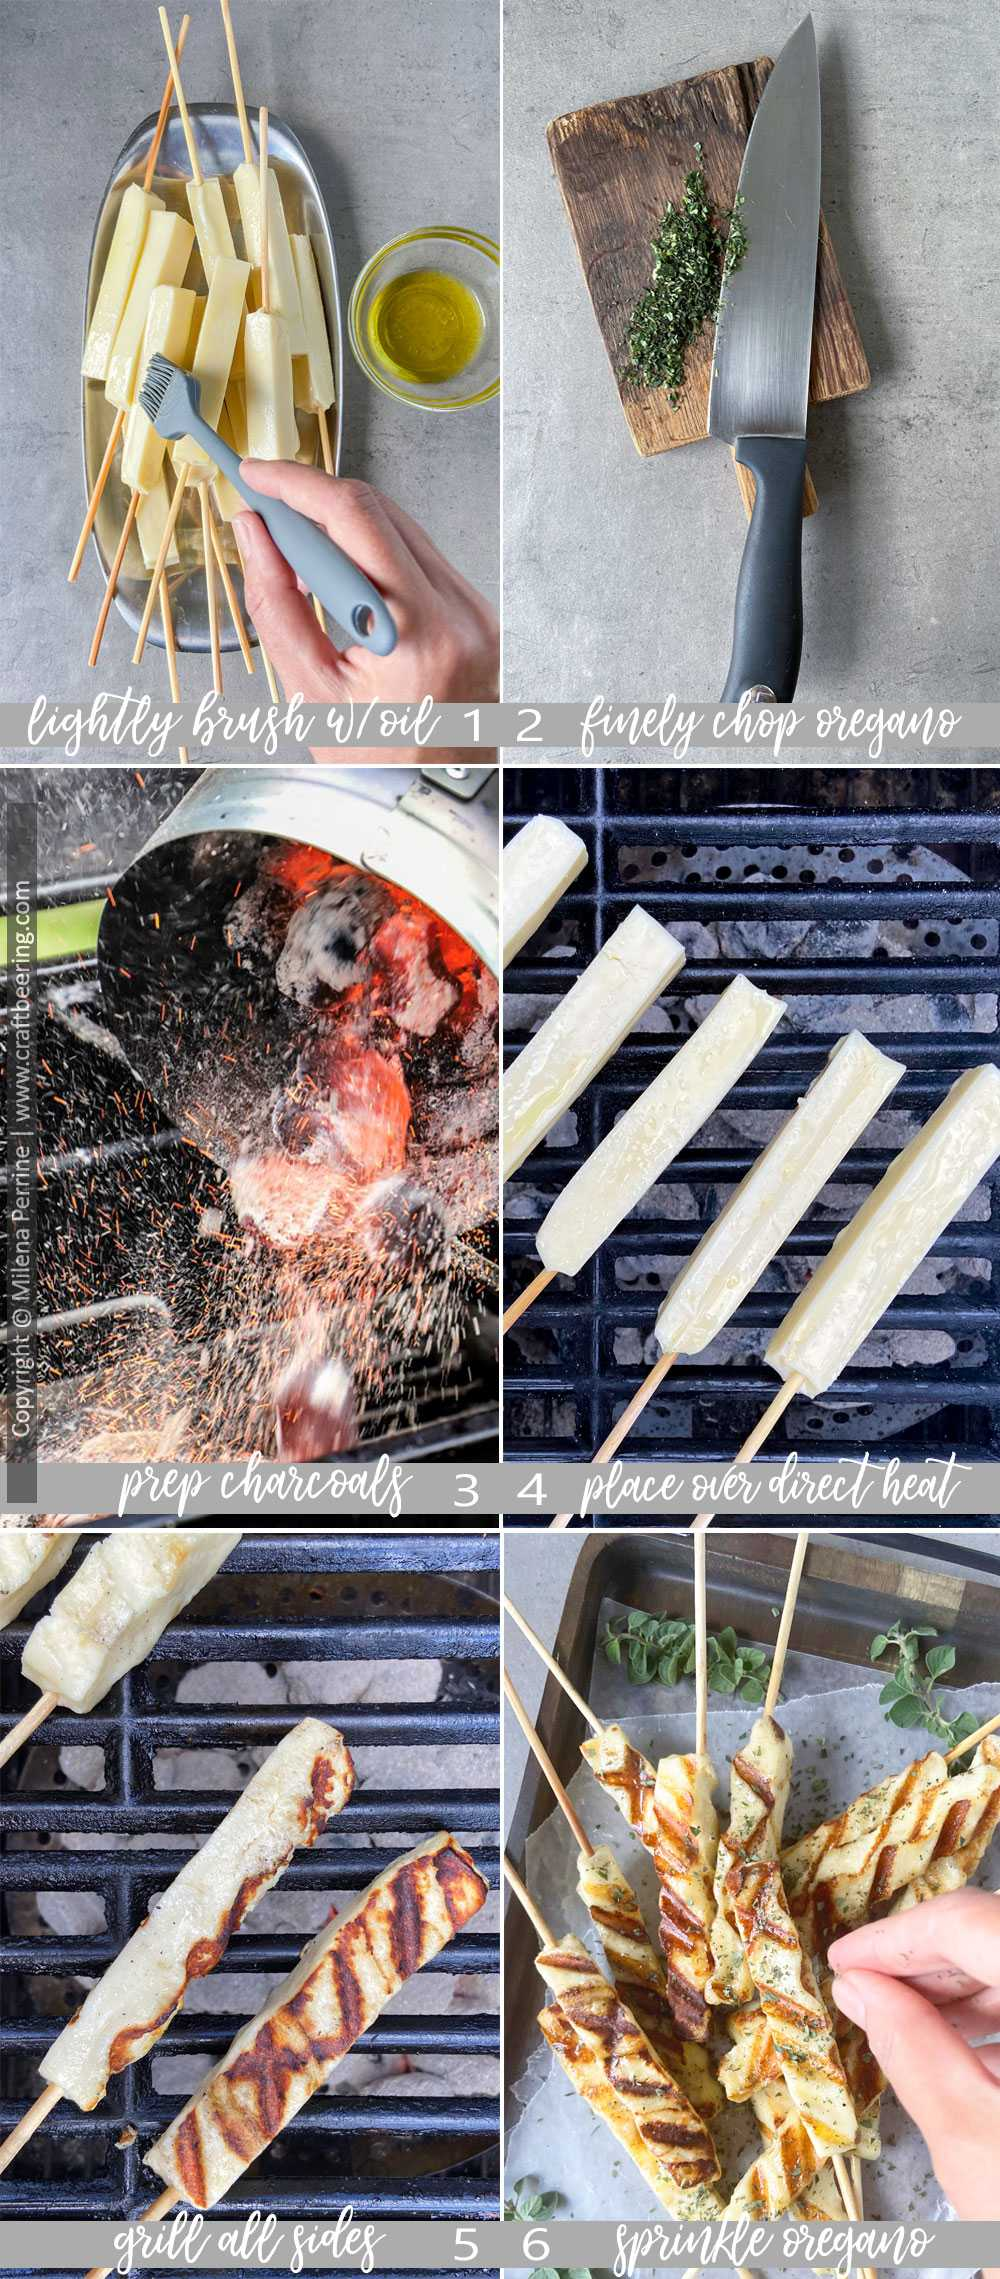 Step by step images showing how to grill queijo coalho Brazilian cheese skewers over charcoals, just like it is done on the beaches and street food stalls in Brazil.